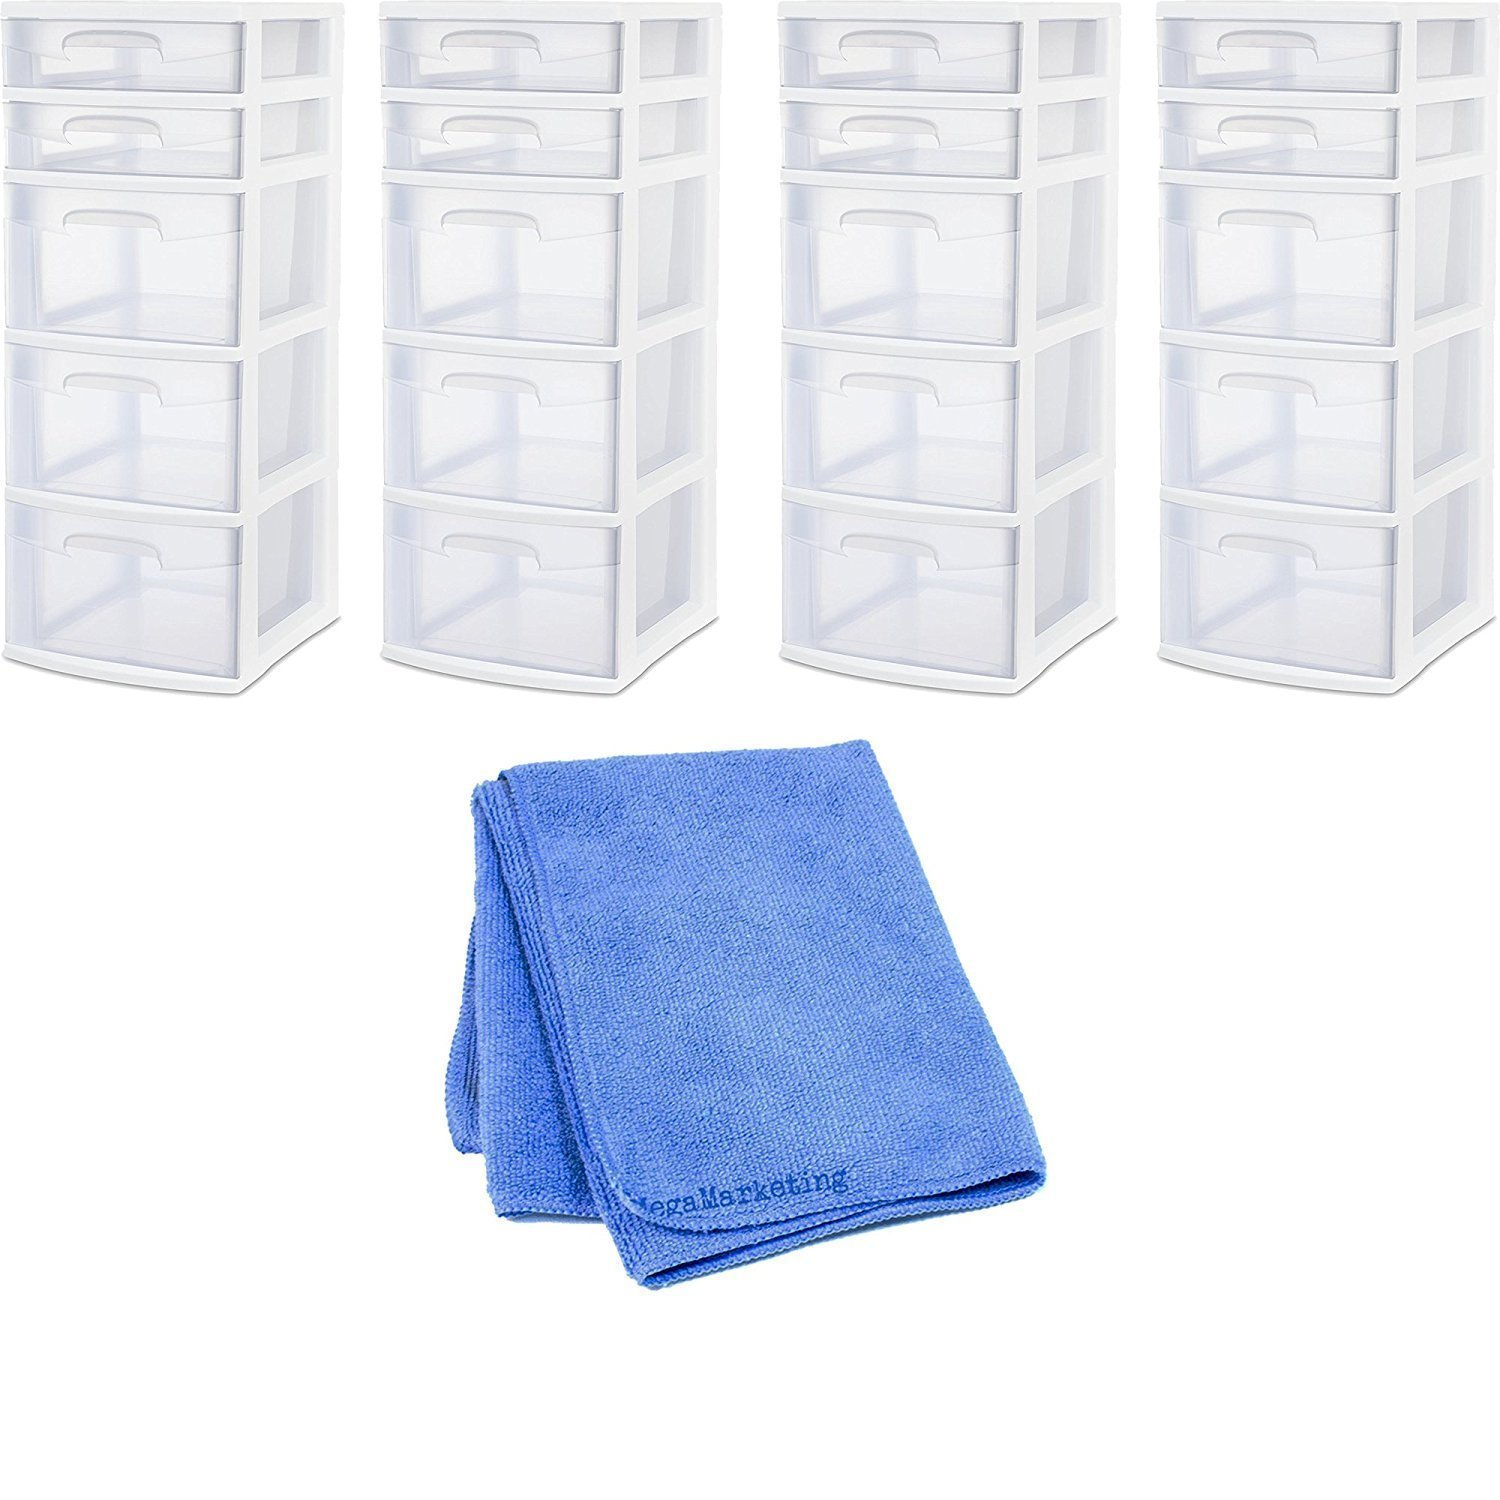 Sterilite 28958002 5 Drawer Tower, White Frame with Clear Drawers, 4-Pack with Dust Cleaner Cloth